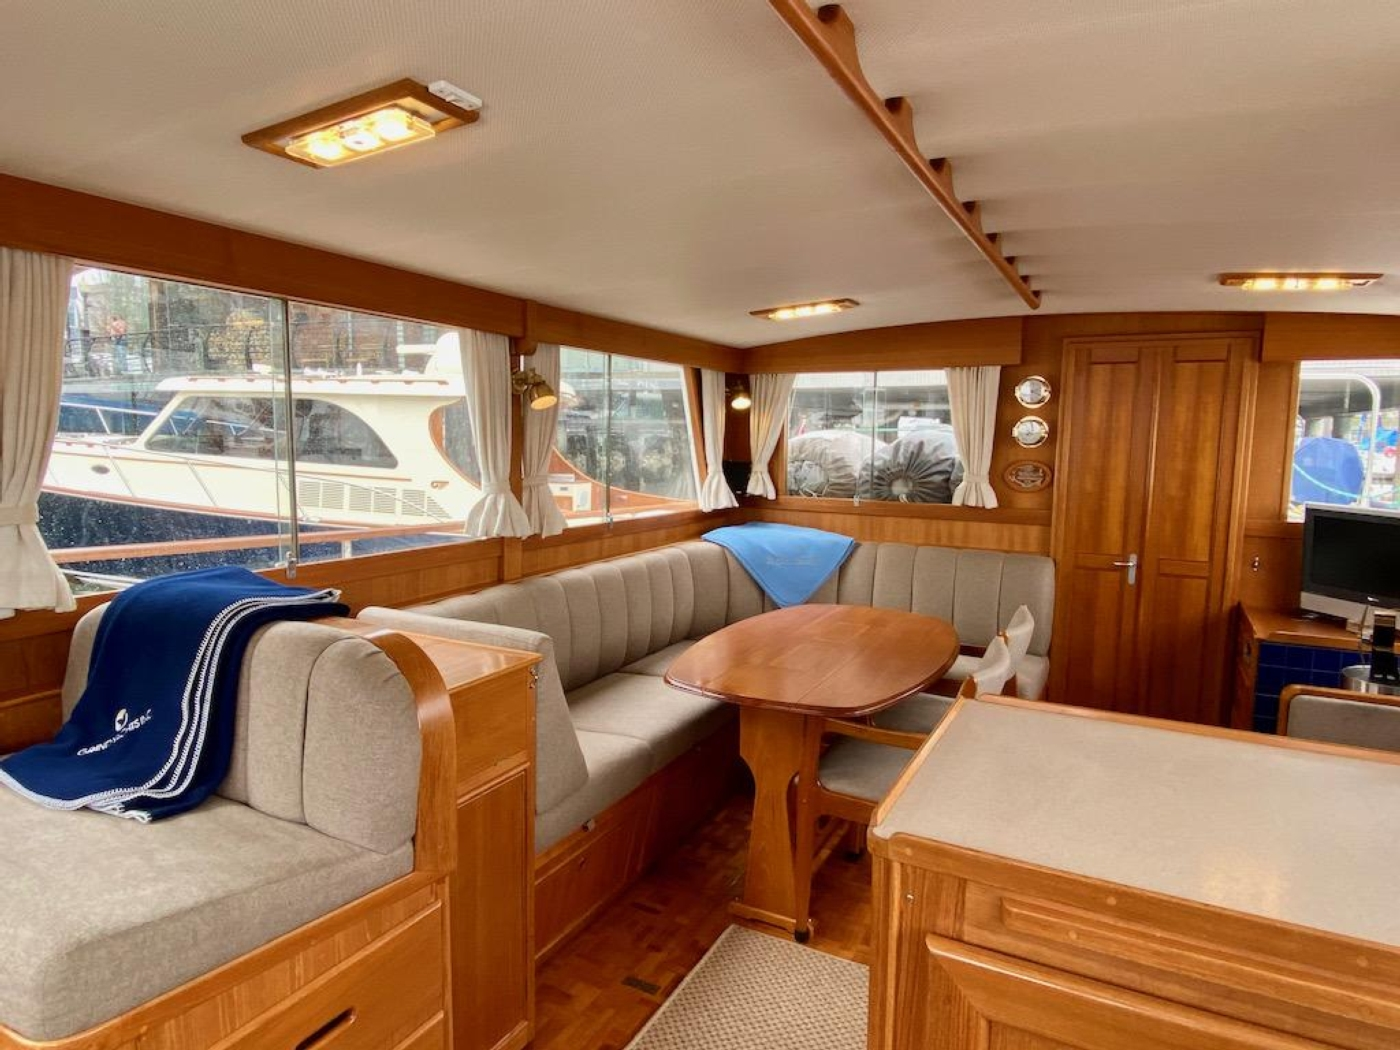 1998 Grand Banks 42 Classic, Salon from galley